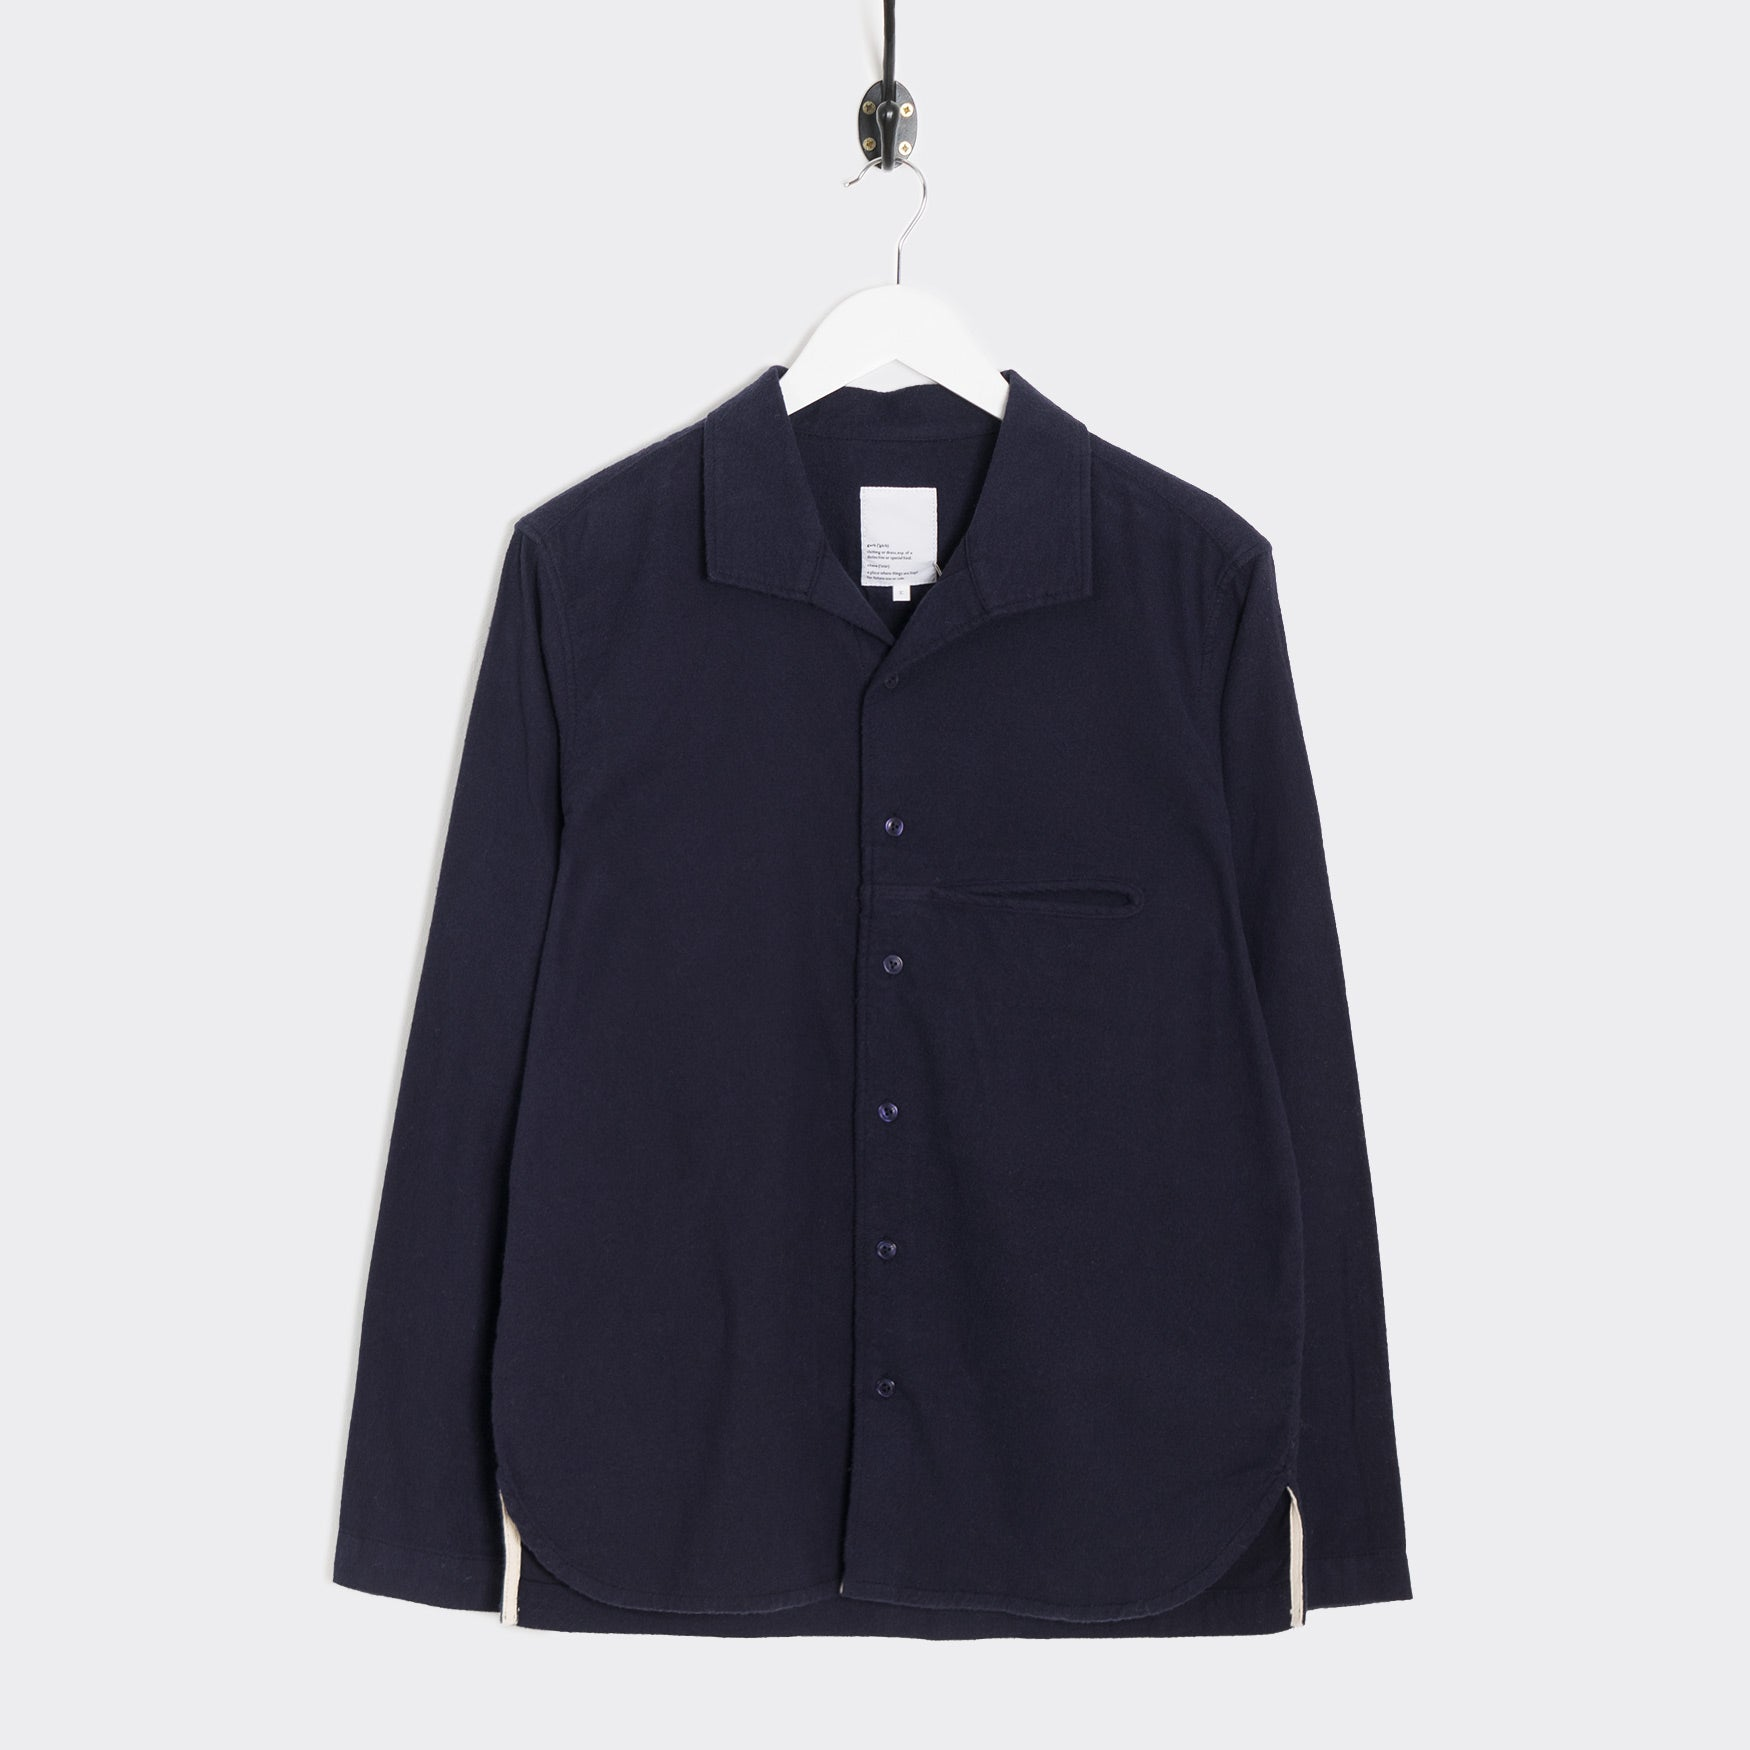 Garbstore Long Sleeve Slacker Shirt - Navy